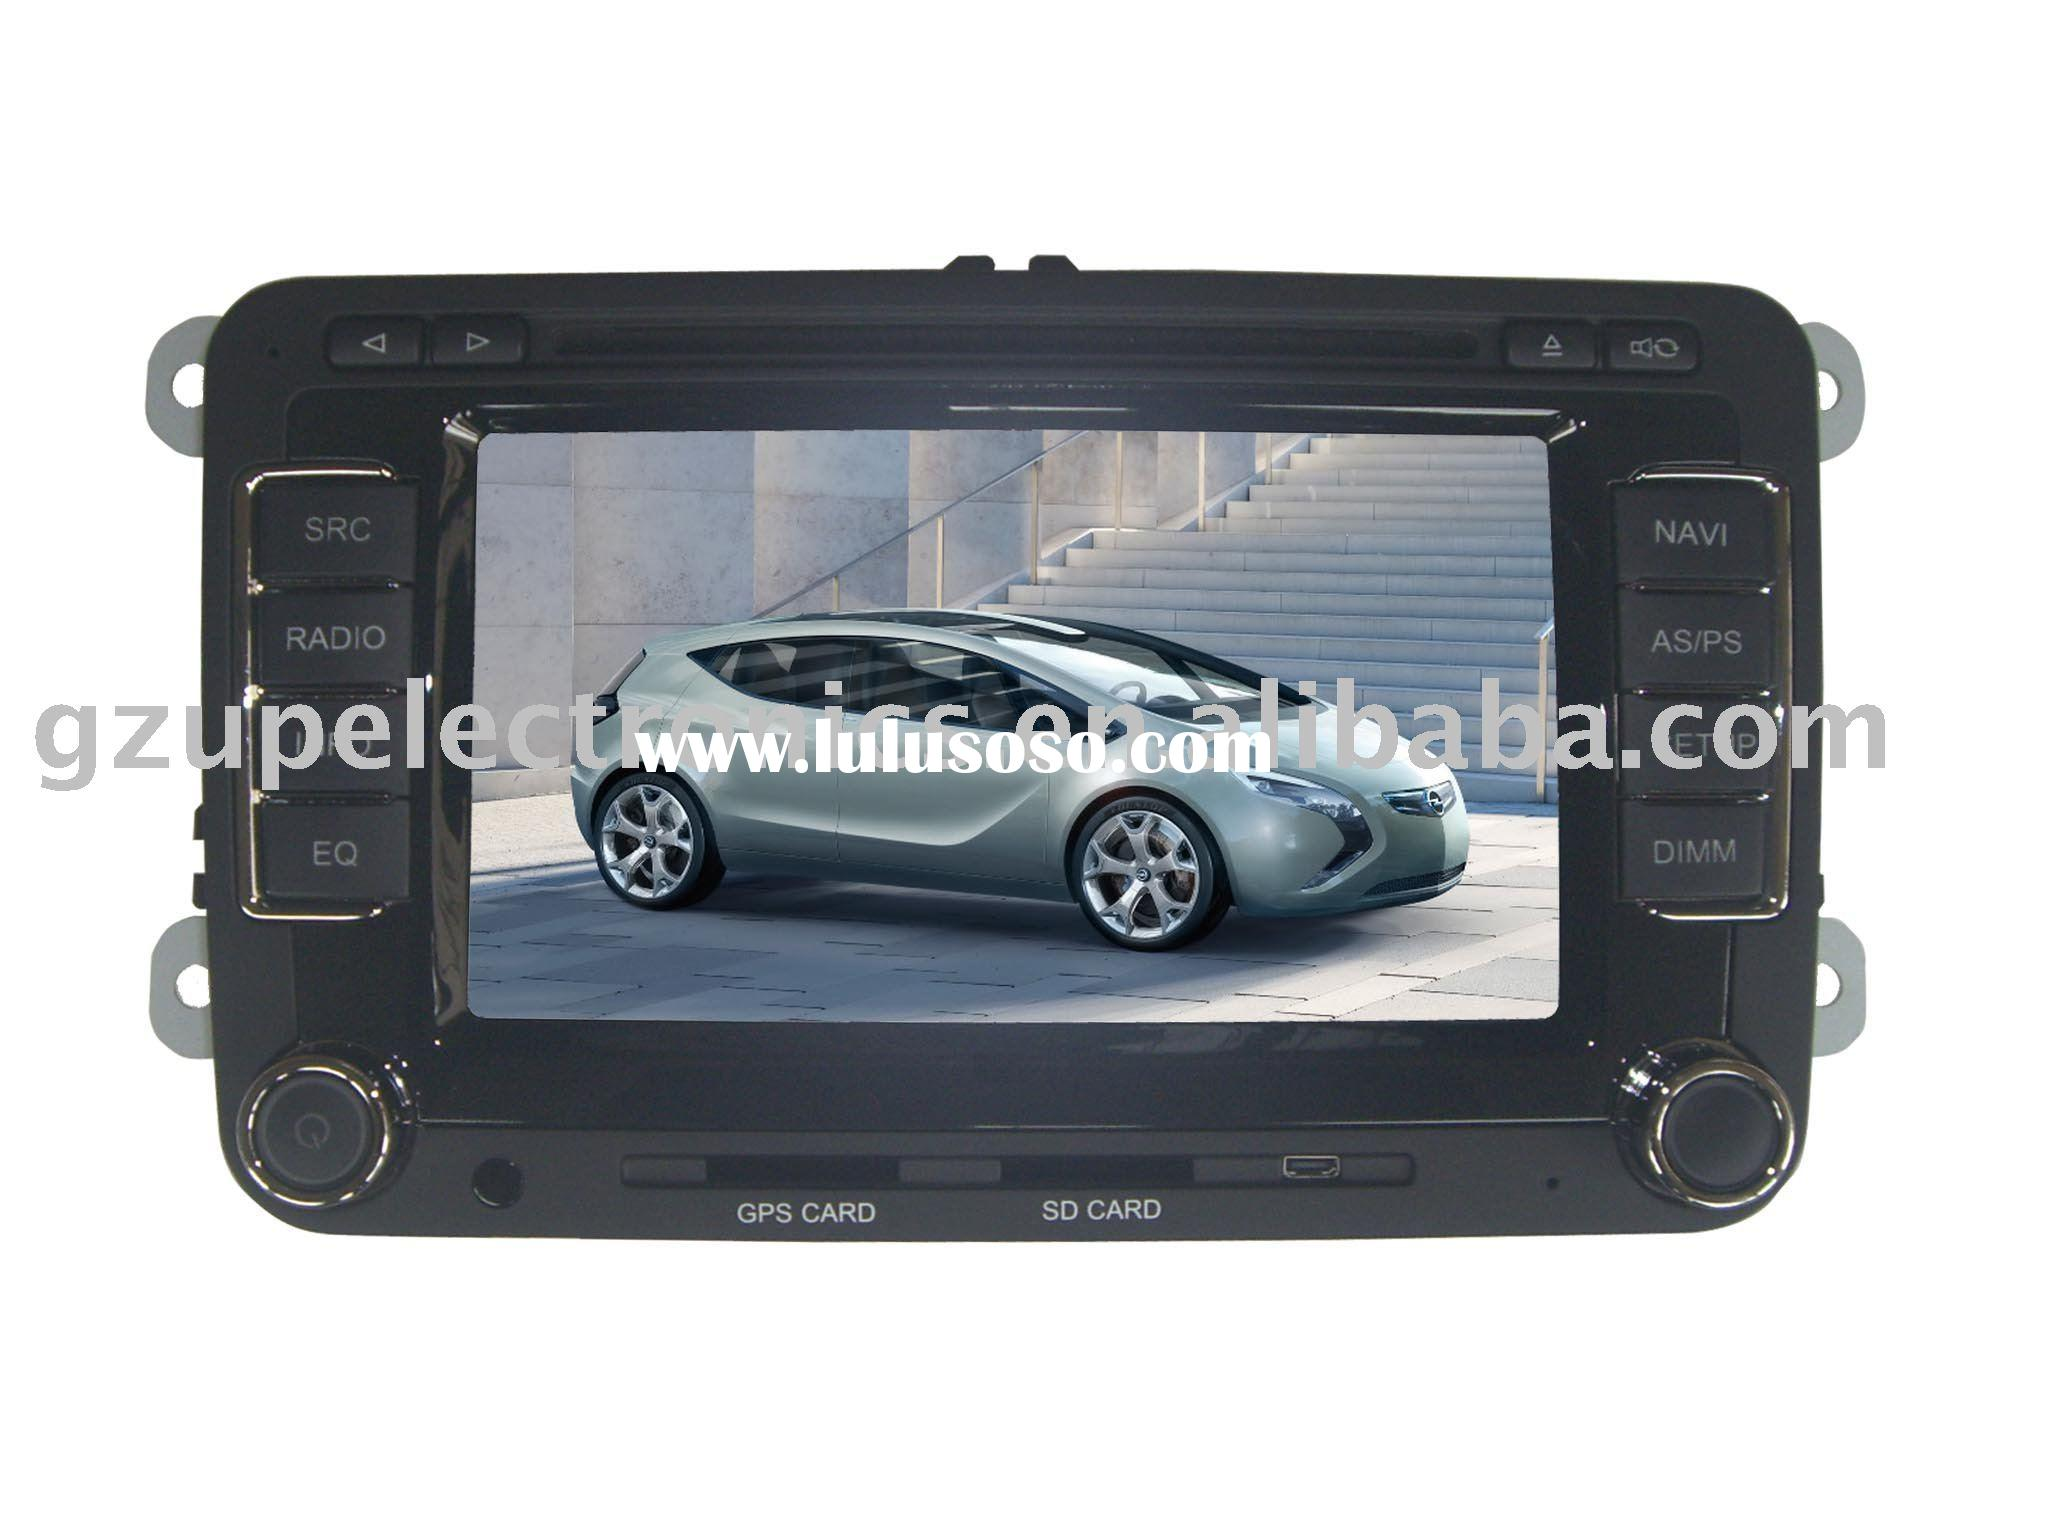 Custom in dash car dvd player for Passat B6/Jetta A5(2005-2008)